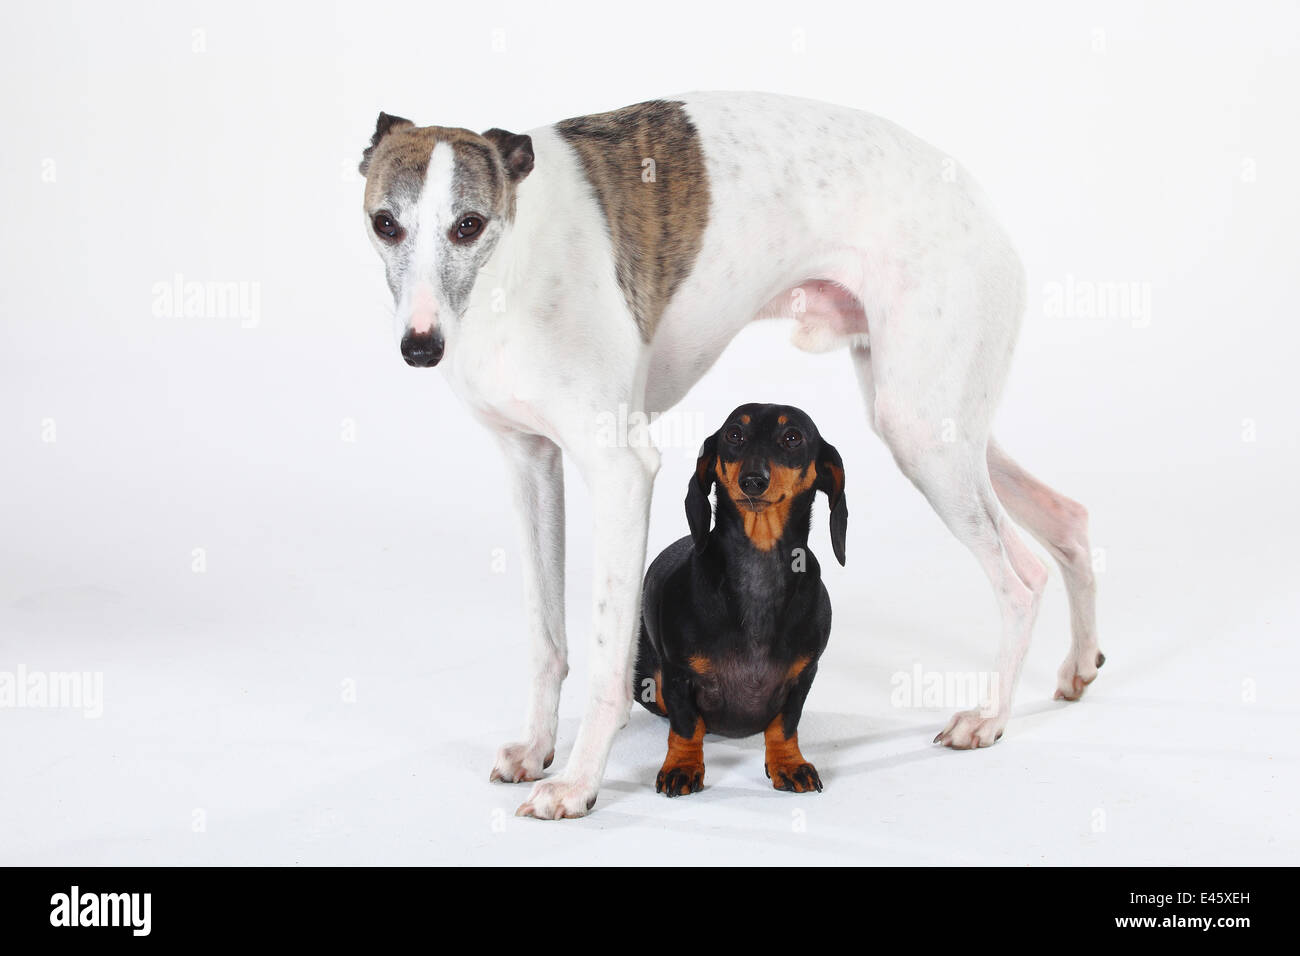 Smooth haired Dachshund, black and tan, with with Whippet standing over - Stock Image